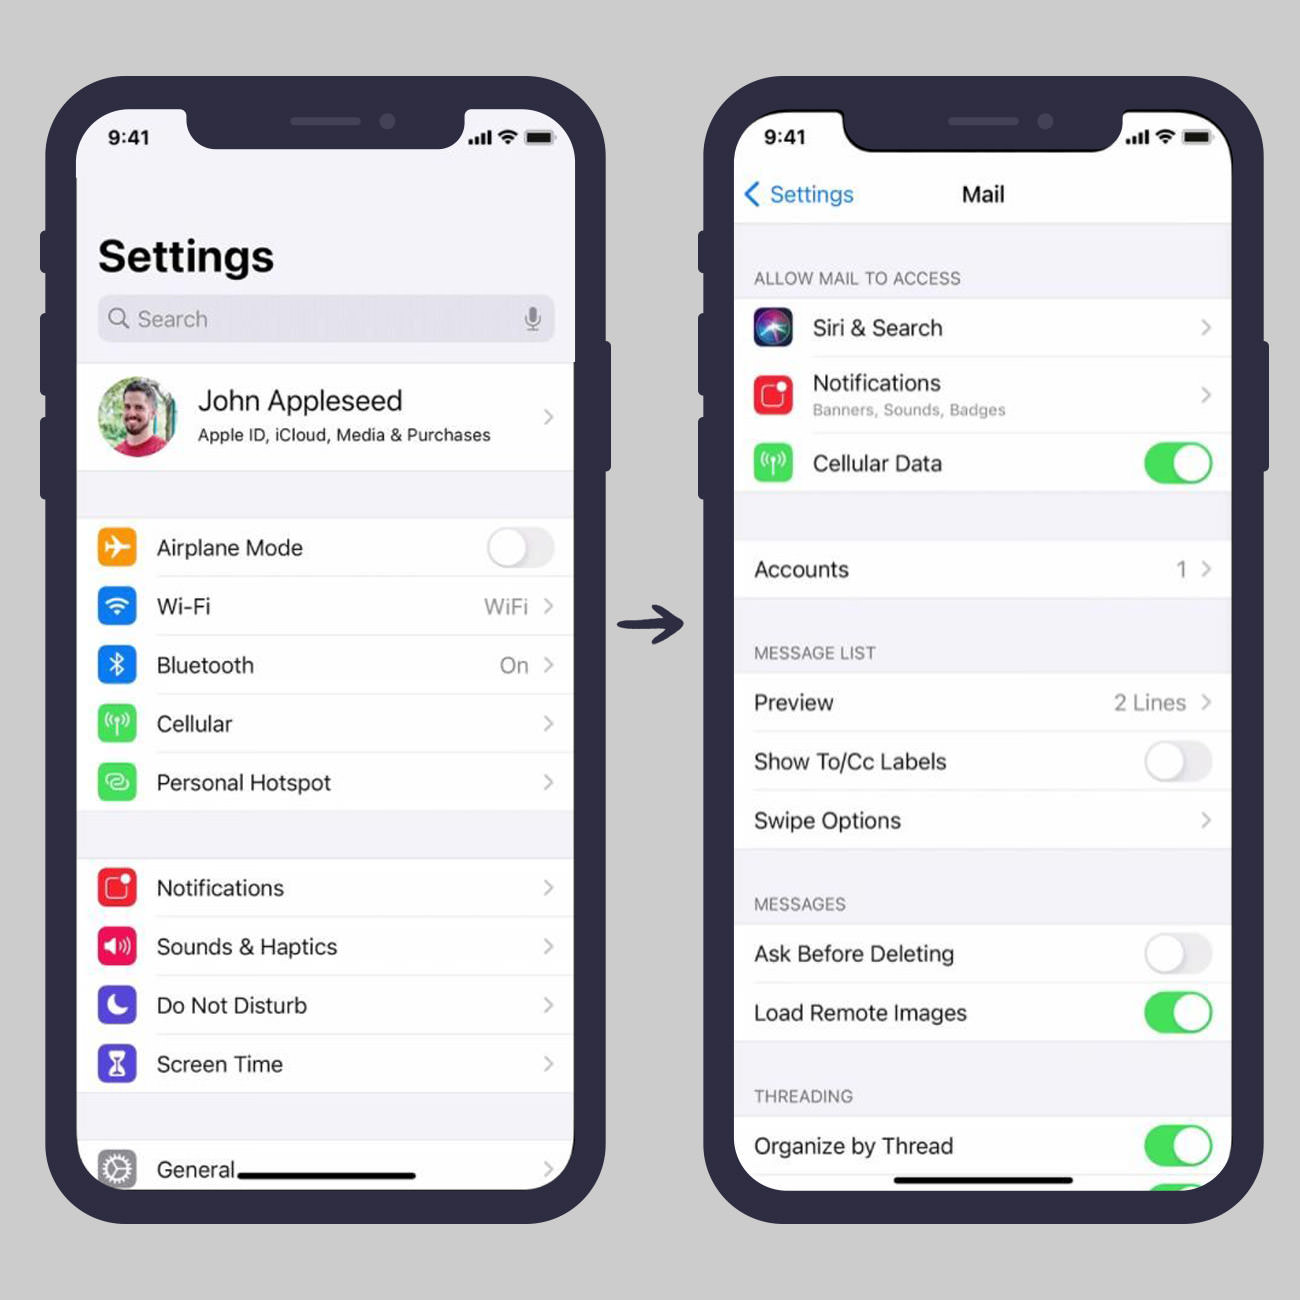 Open Settings and go to Mail in iOS